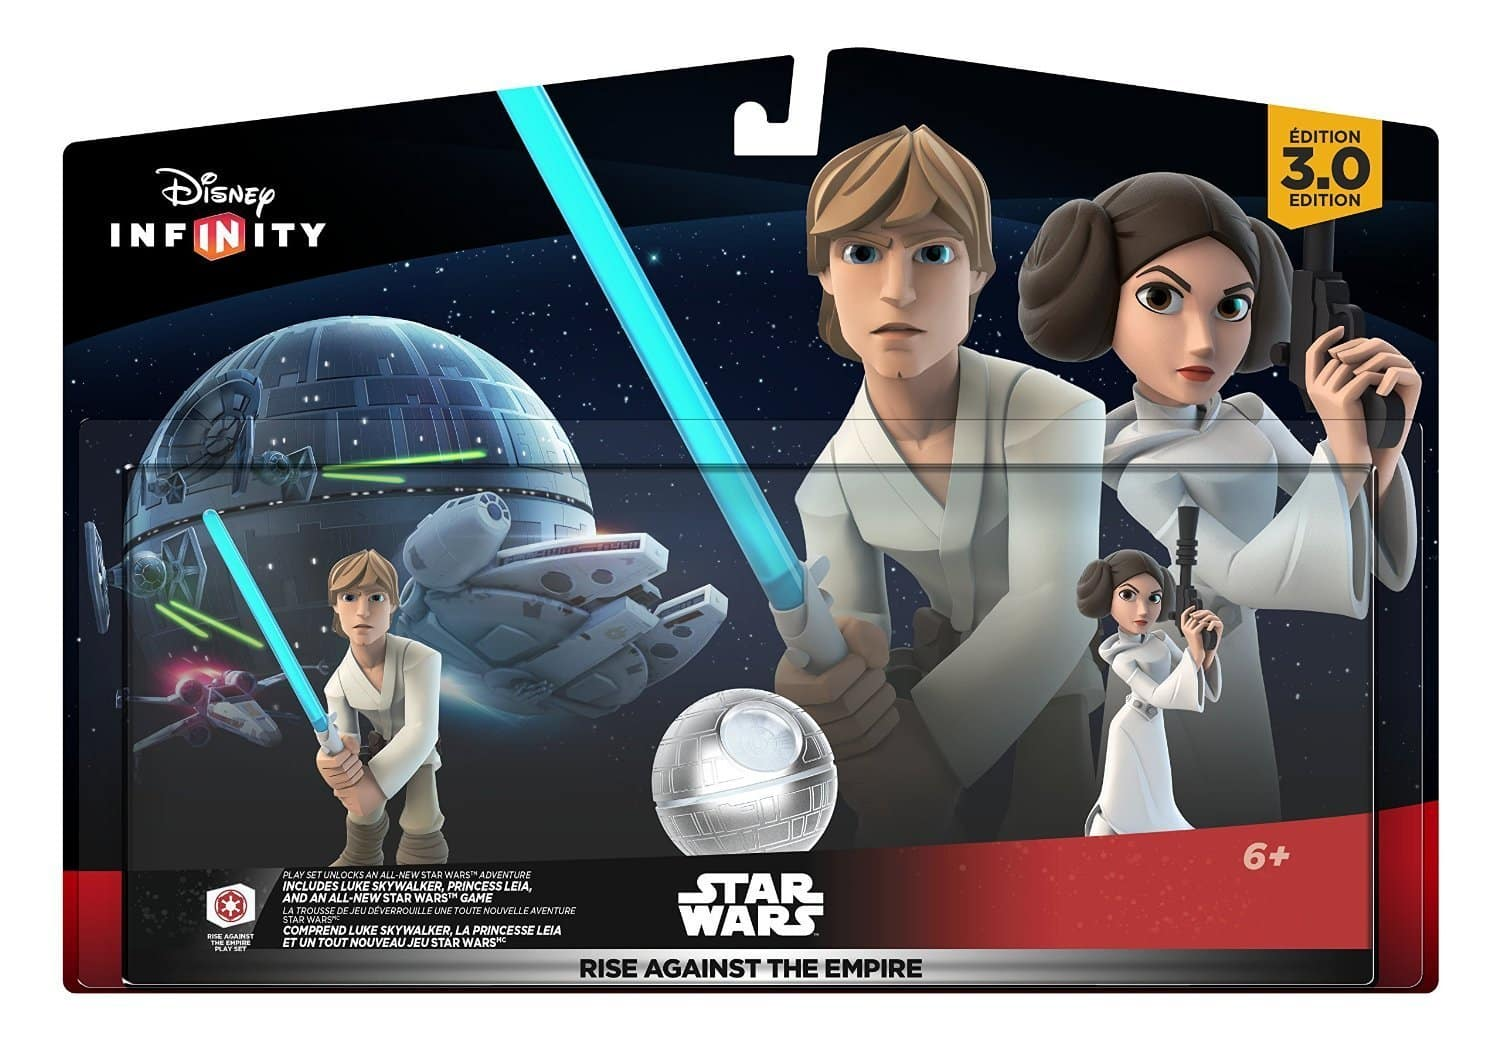 Disney Infinity: 3.0 Edition Play Sets: Star Wars Rise Against the Empire $11.99 ($9.59 w/ GCU), Star Wars: The Force Awakens $14.99 ($11.99 w/ GCU) & More + Free Store Pickup